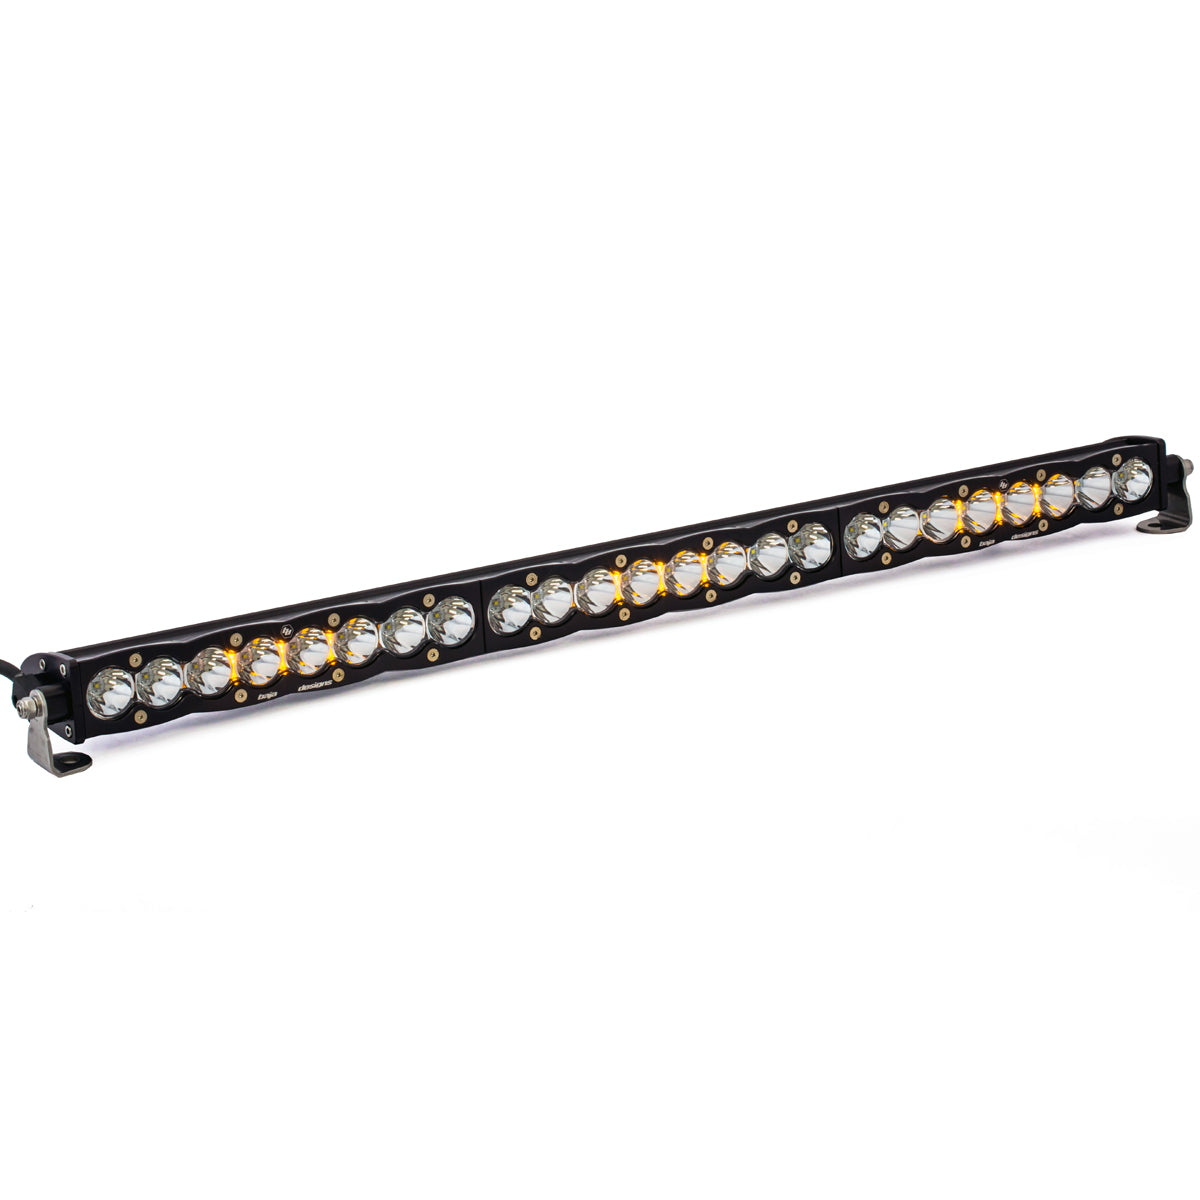 "30"" S8 Series Light Bar - Grille Mount Kit"